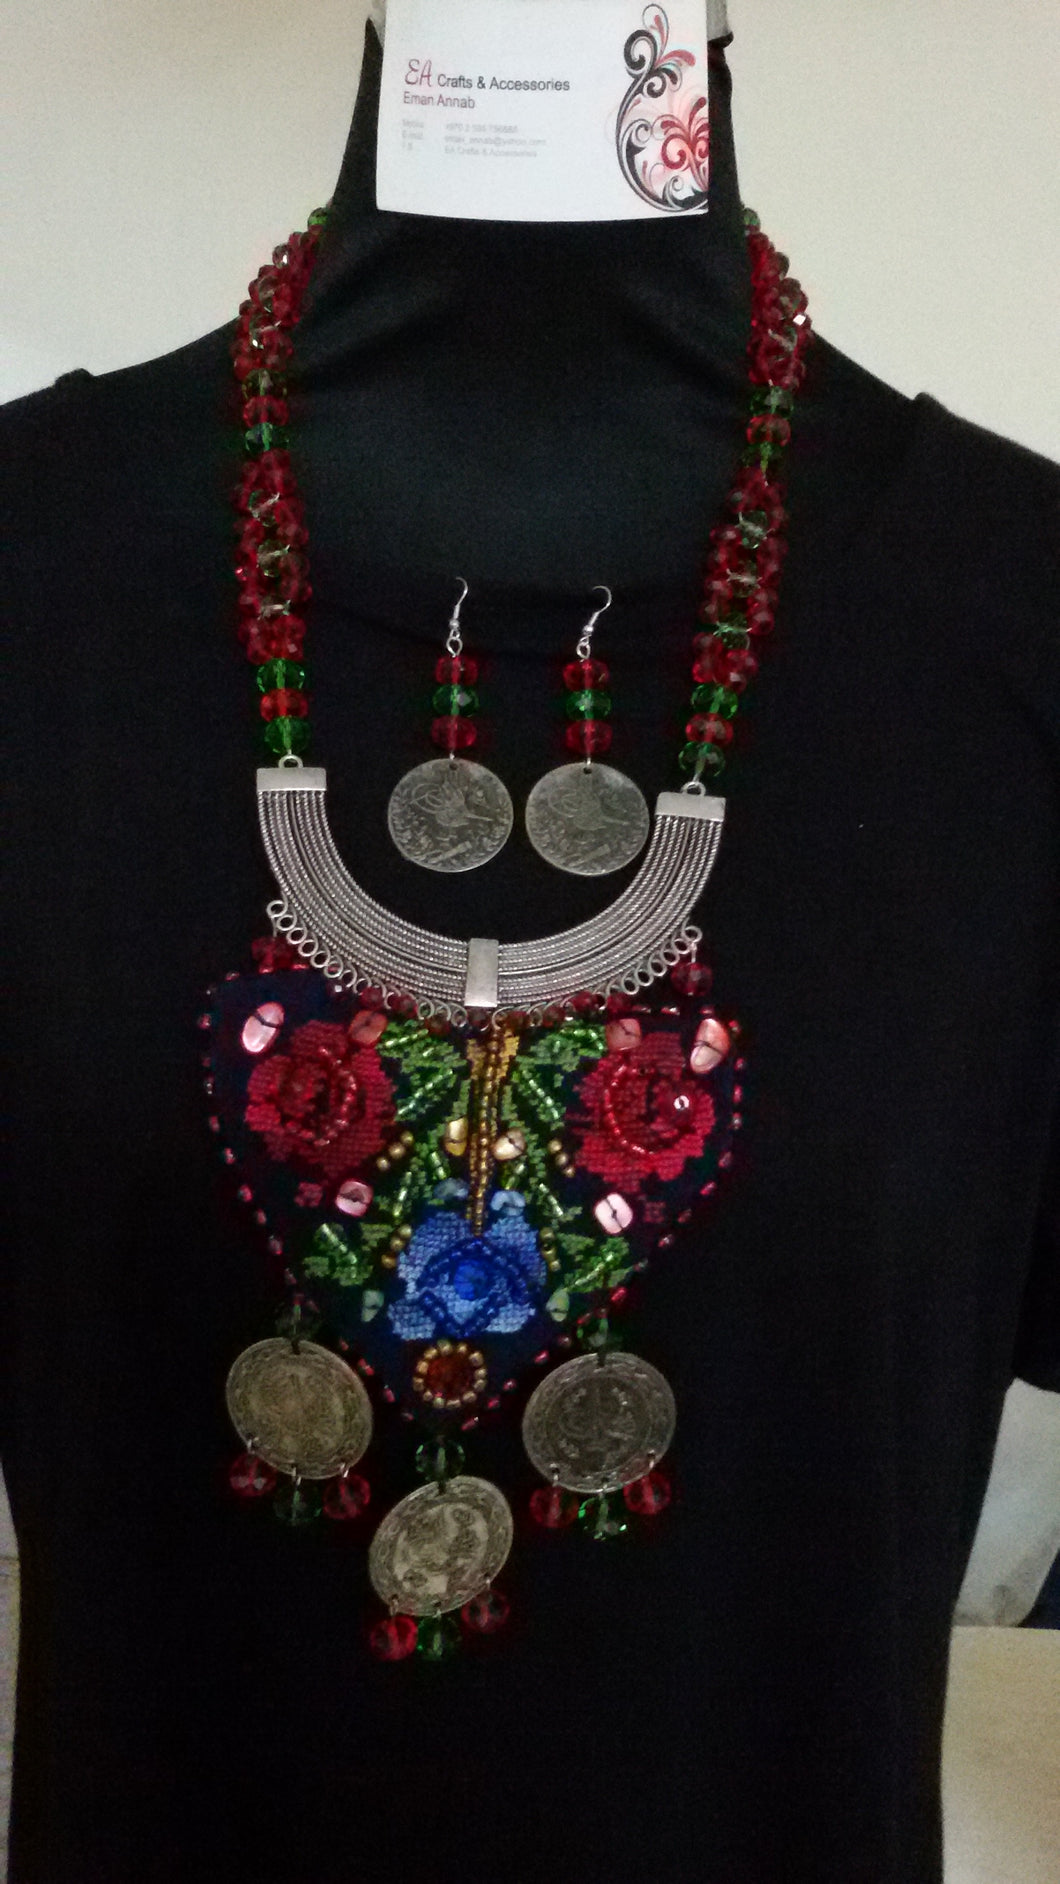 Handmade Boho style necklace and earrings set with Hebron stitch embroidery - Falastini Brand